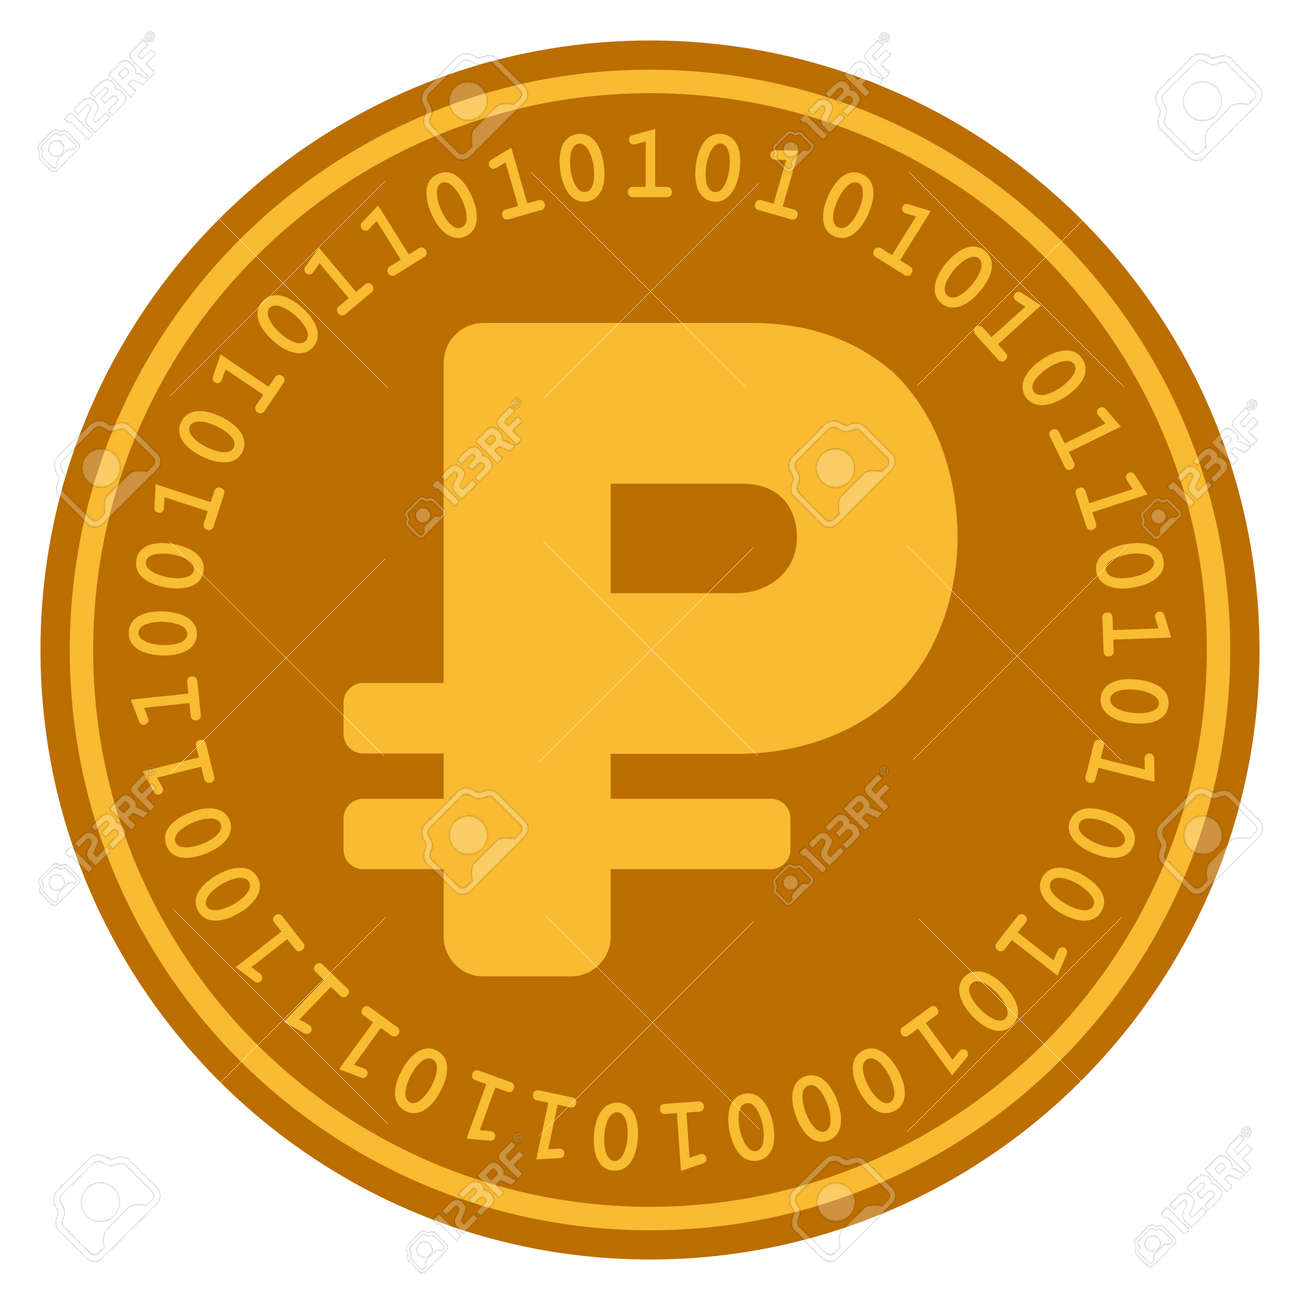 russian cryptocurrency coin